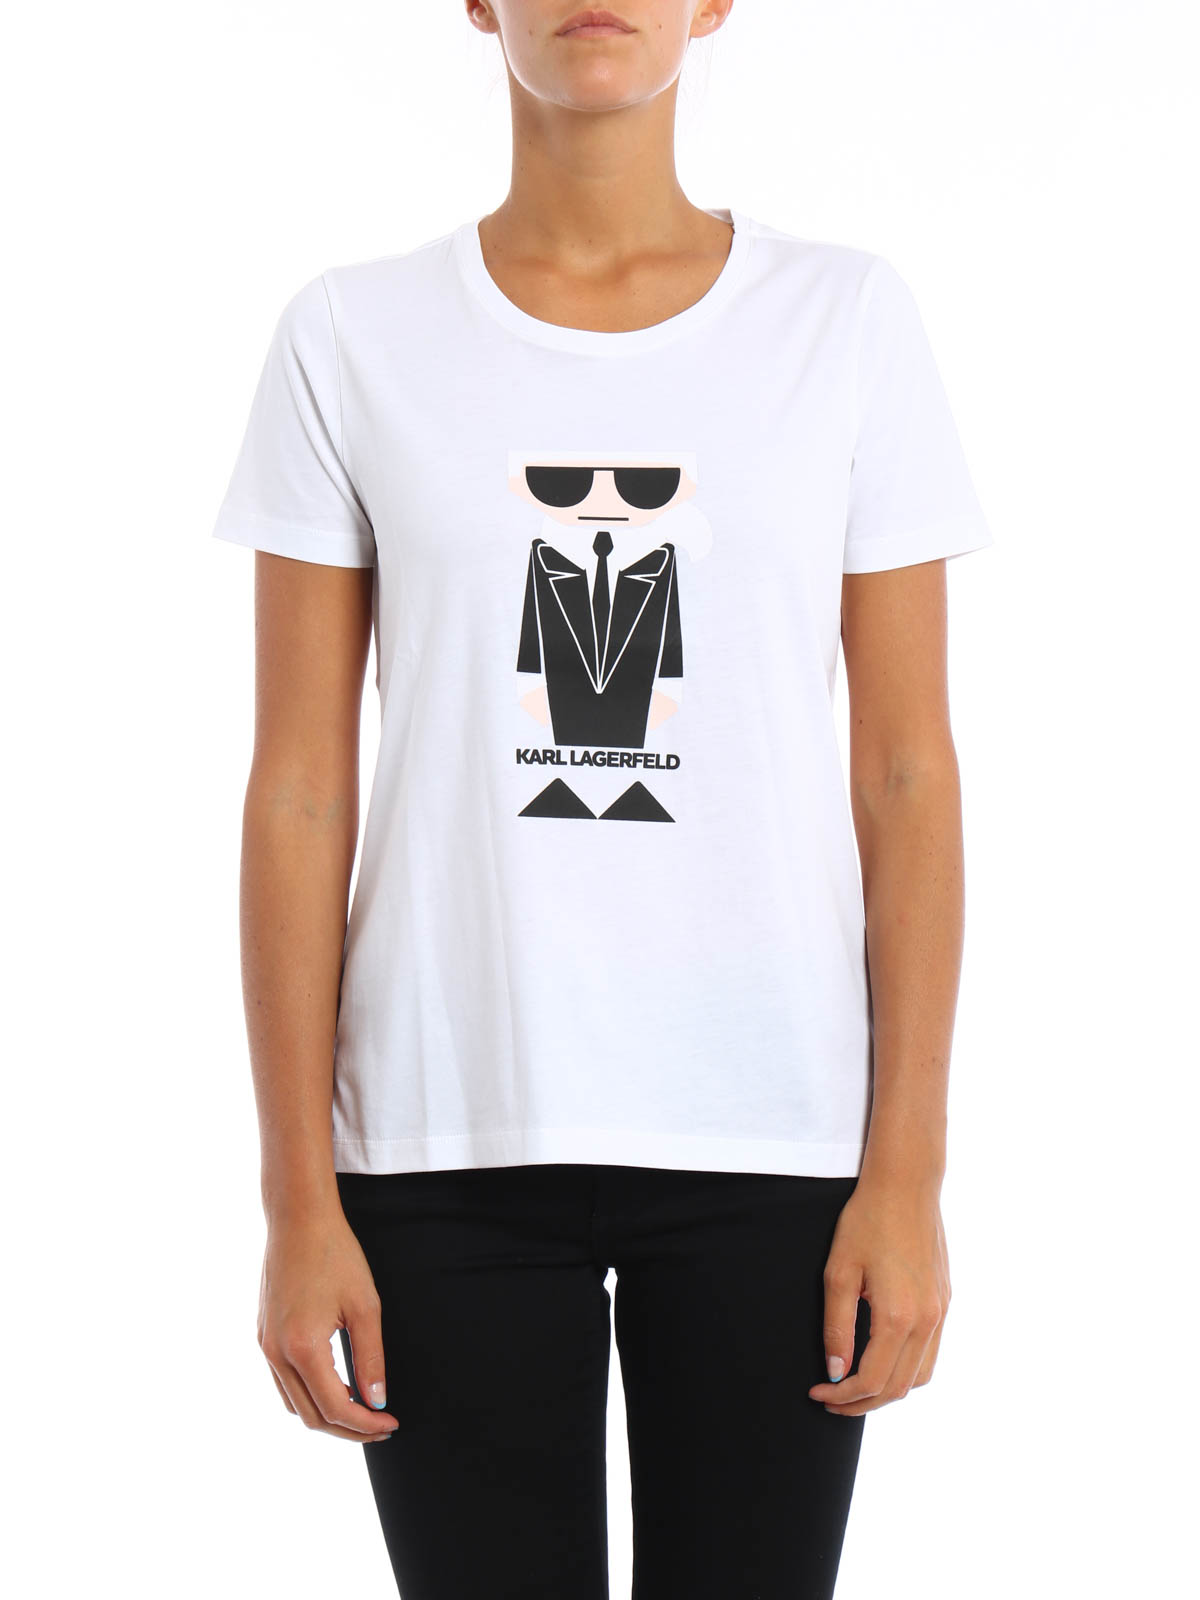 karl kocktail t shirt by karl lagerfeld t shirts shop. Black Bedroom Furniture Sets. Home Design Ideas